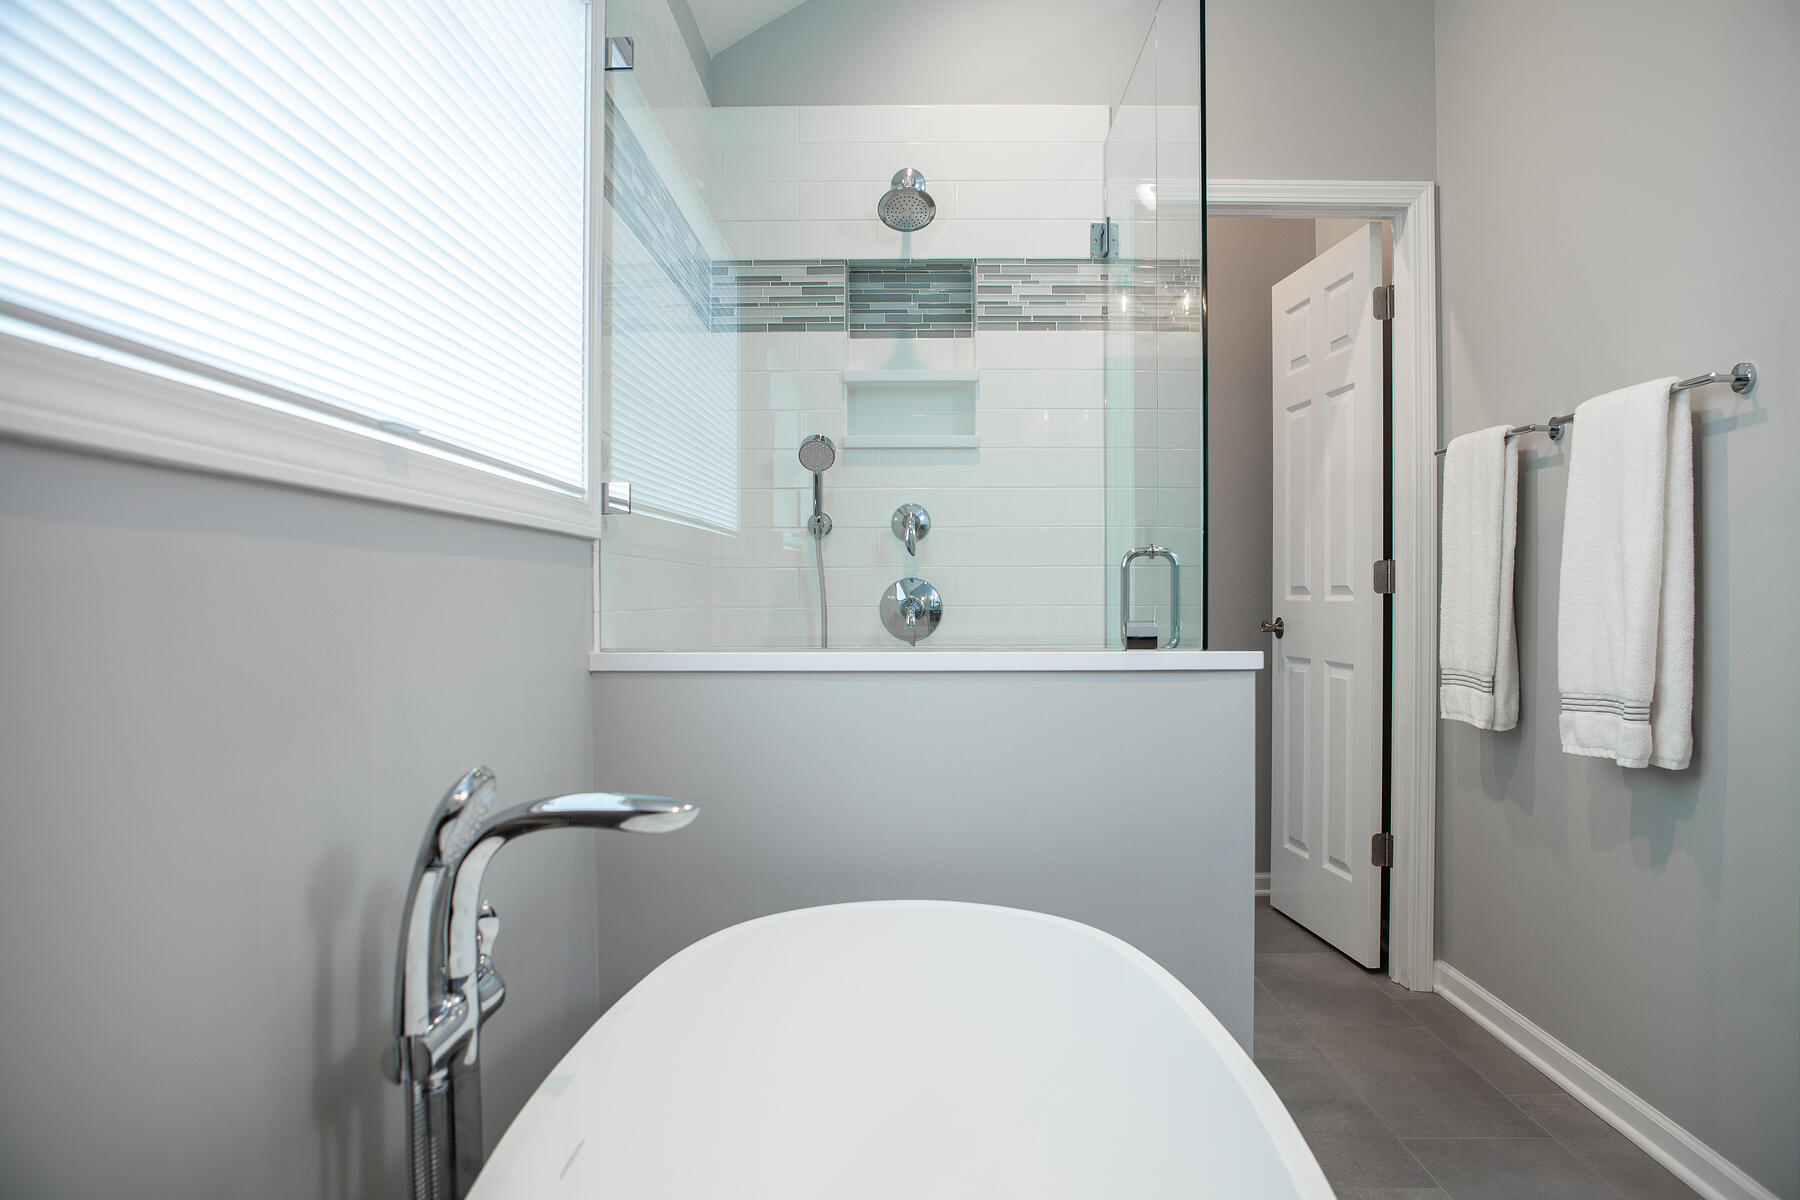 Beautiful modern bathroom remodel in Lake Zurich with white tub and glass shower surround..